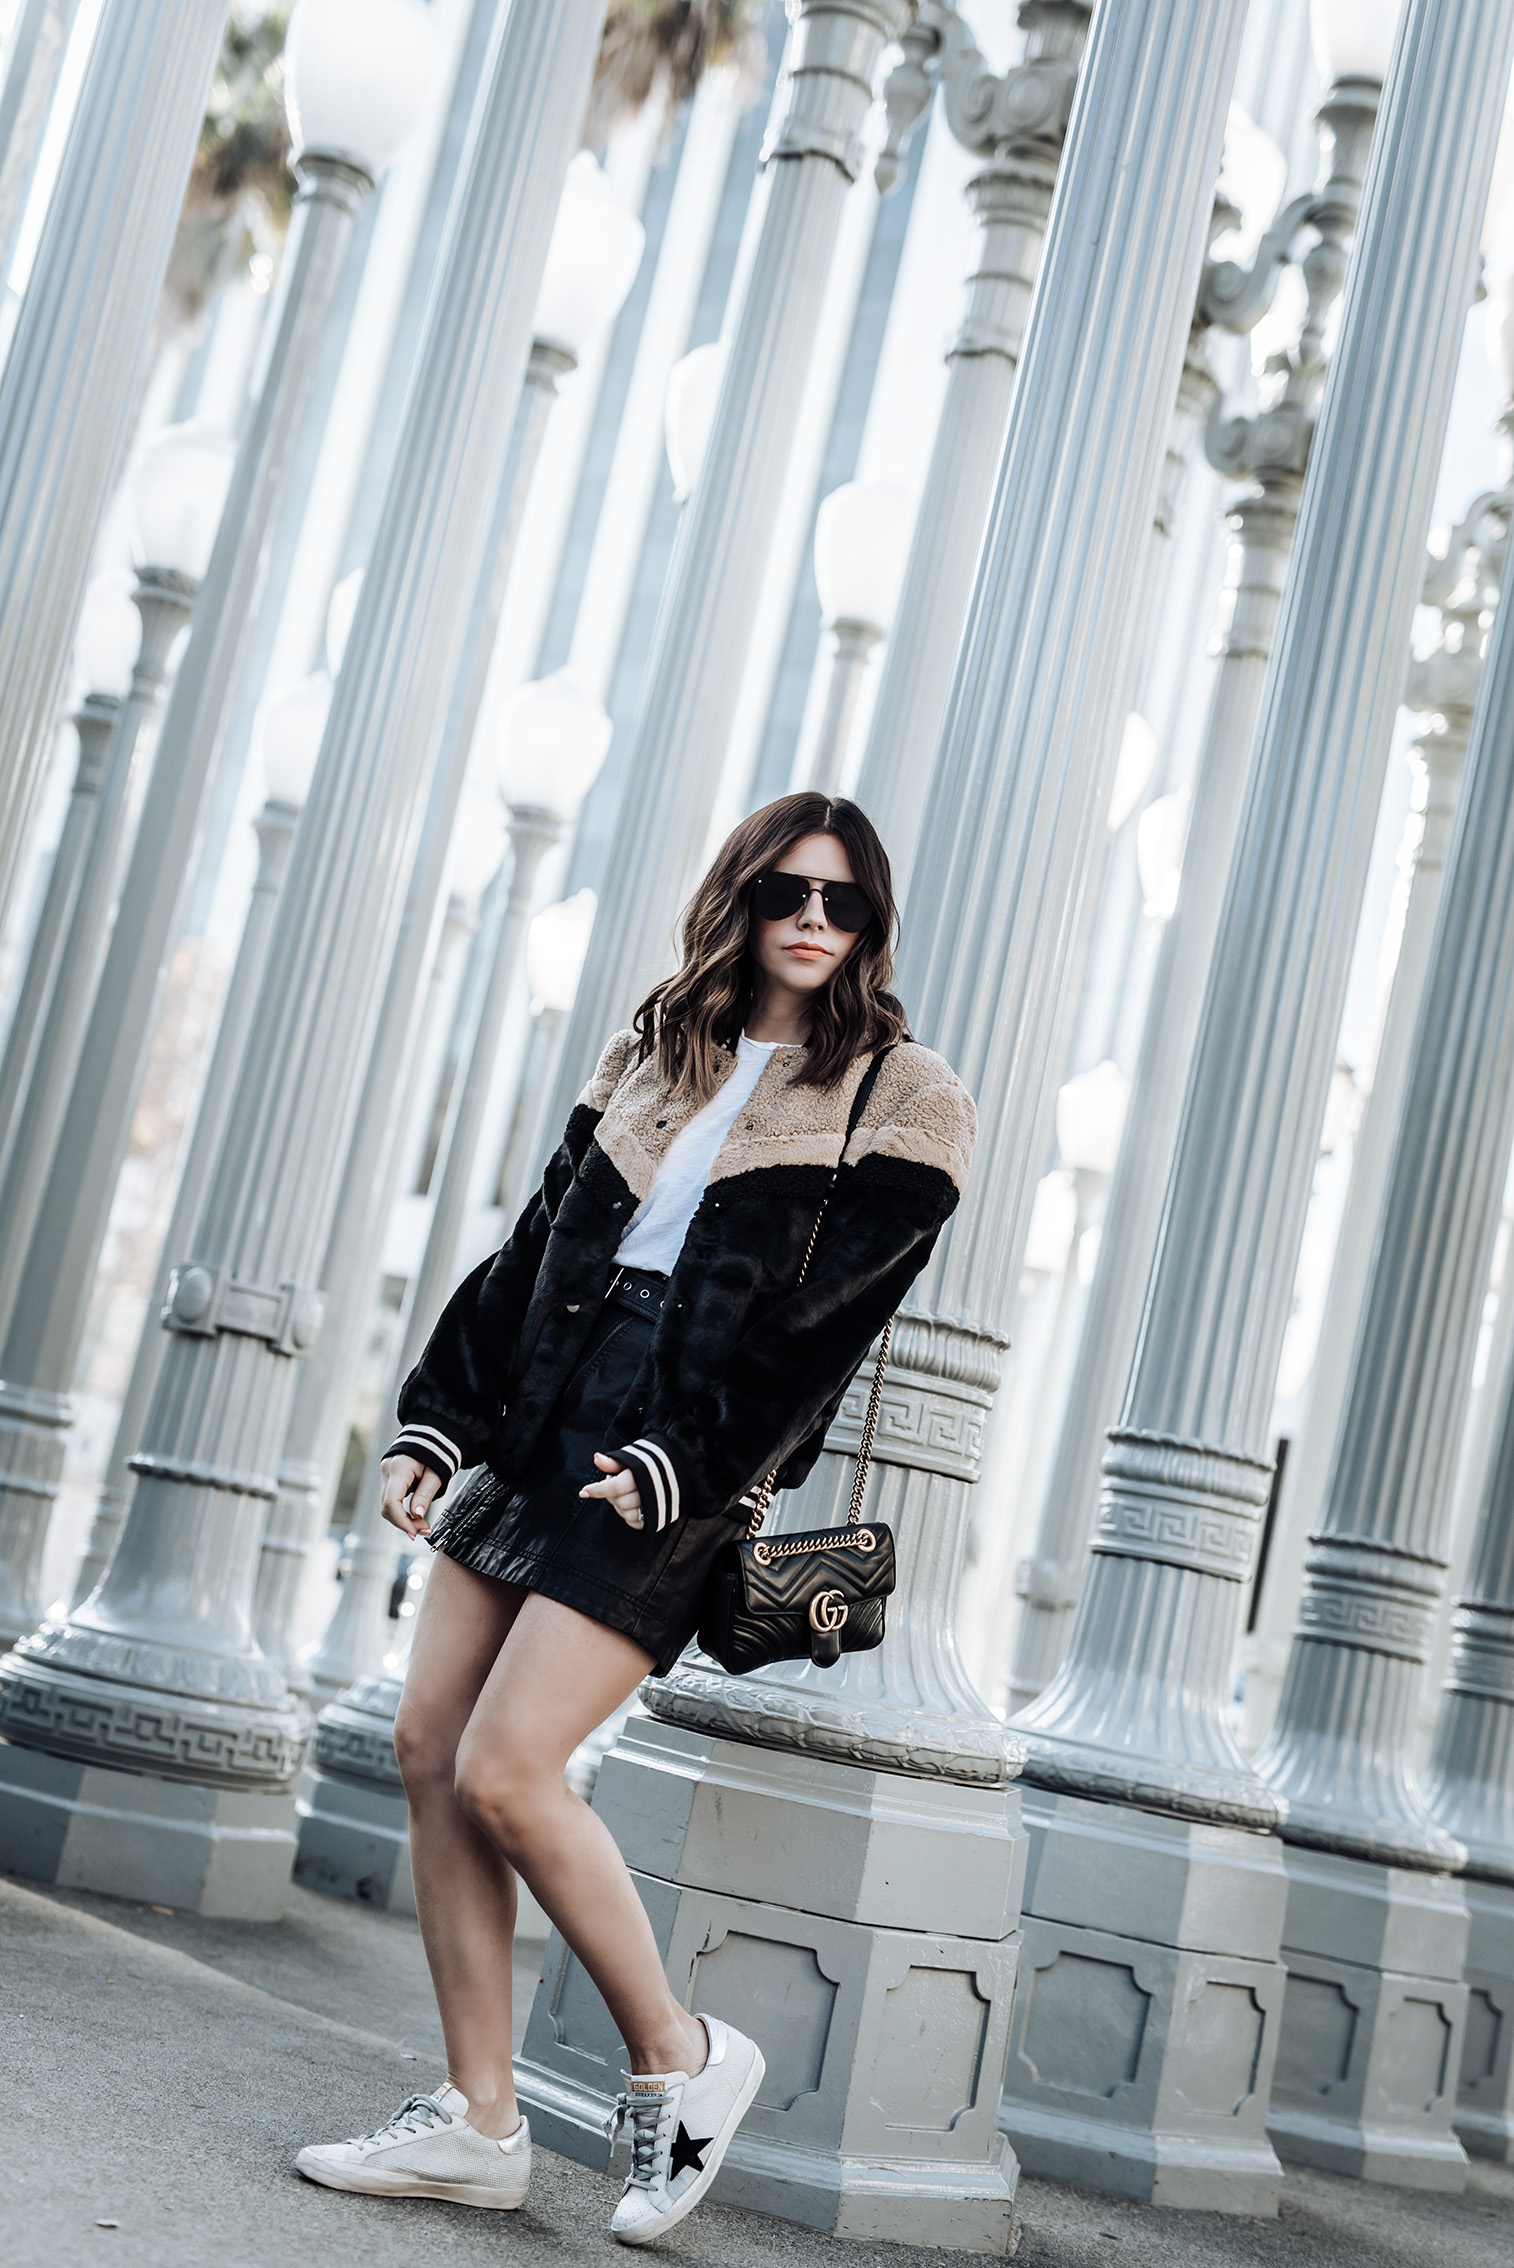 Faux fur bomber (Lord & Taylor) | Free People Feeing Fresh vegan leather skirt | Golden Goose Superstar Sneakers| Gucci Bag | Faux fur bomber | skirt |